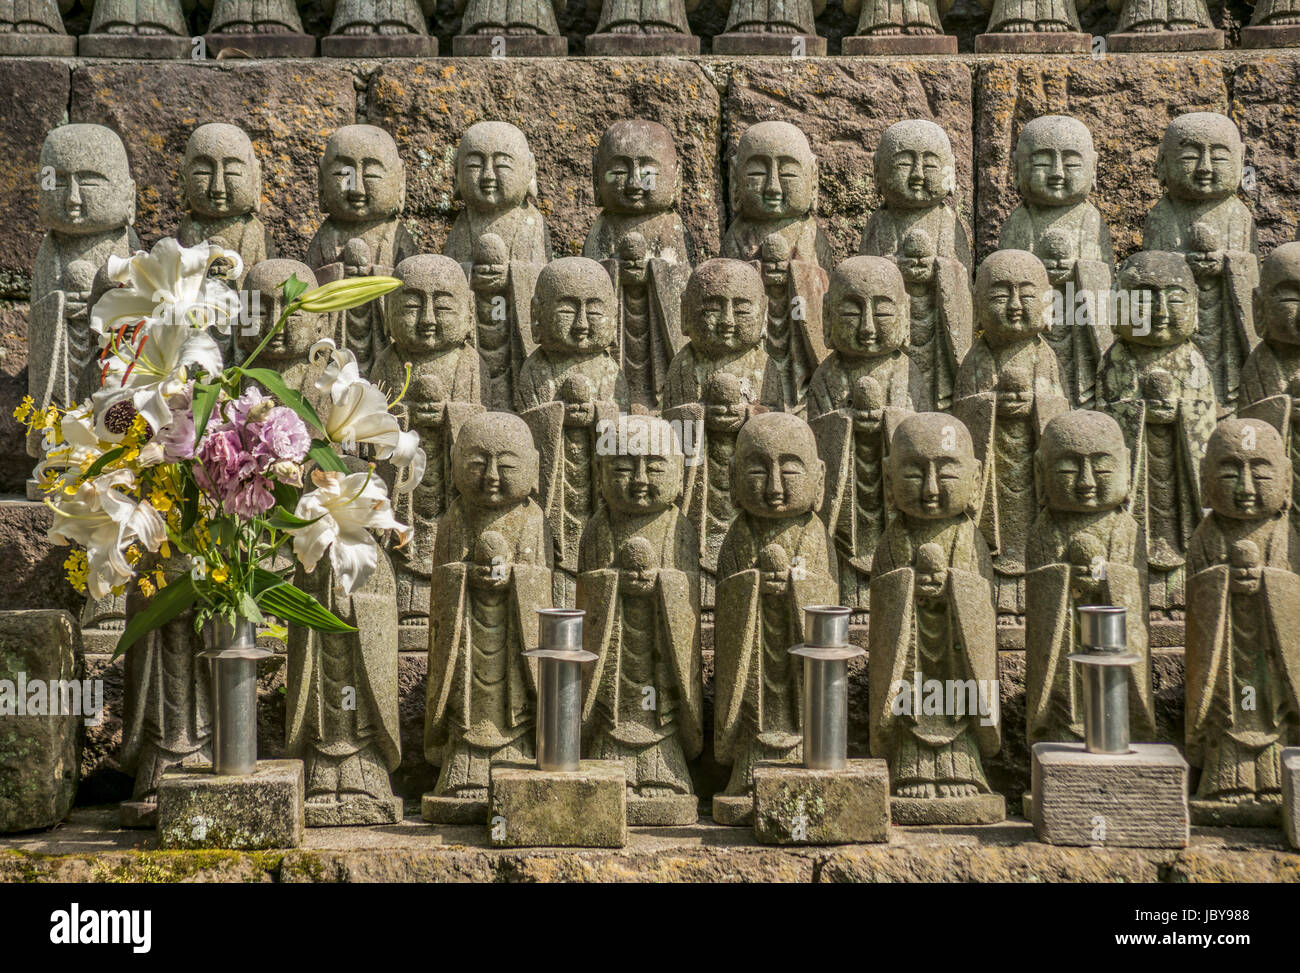 Jizo stone statues at the Hase-dera temple, commonly called the Hase-kannon, one of the Buddhist temples in Kamakura, - Stock Image